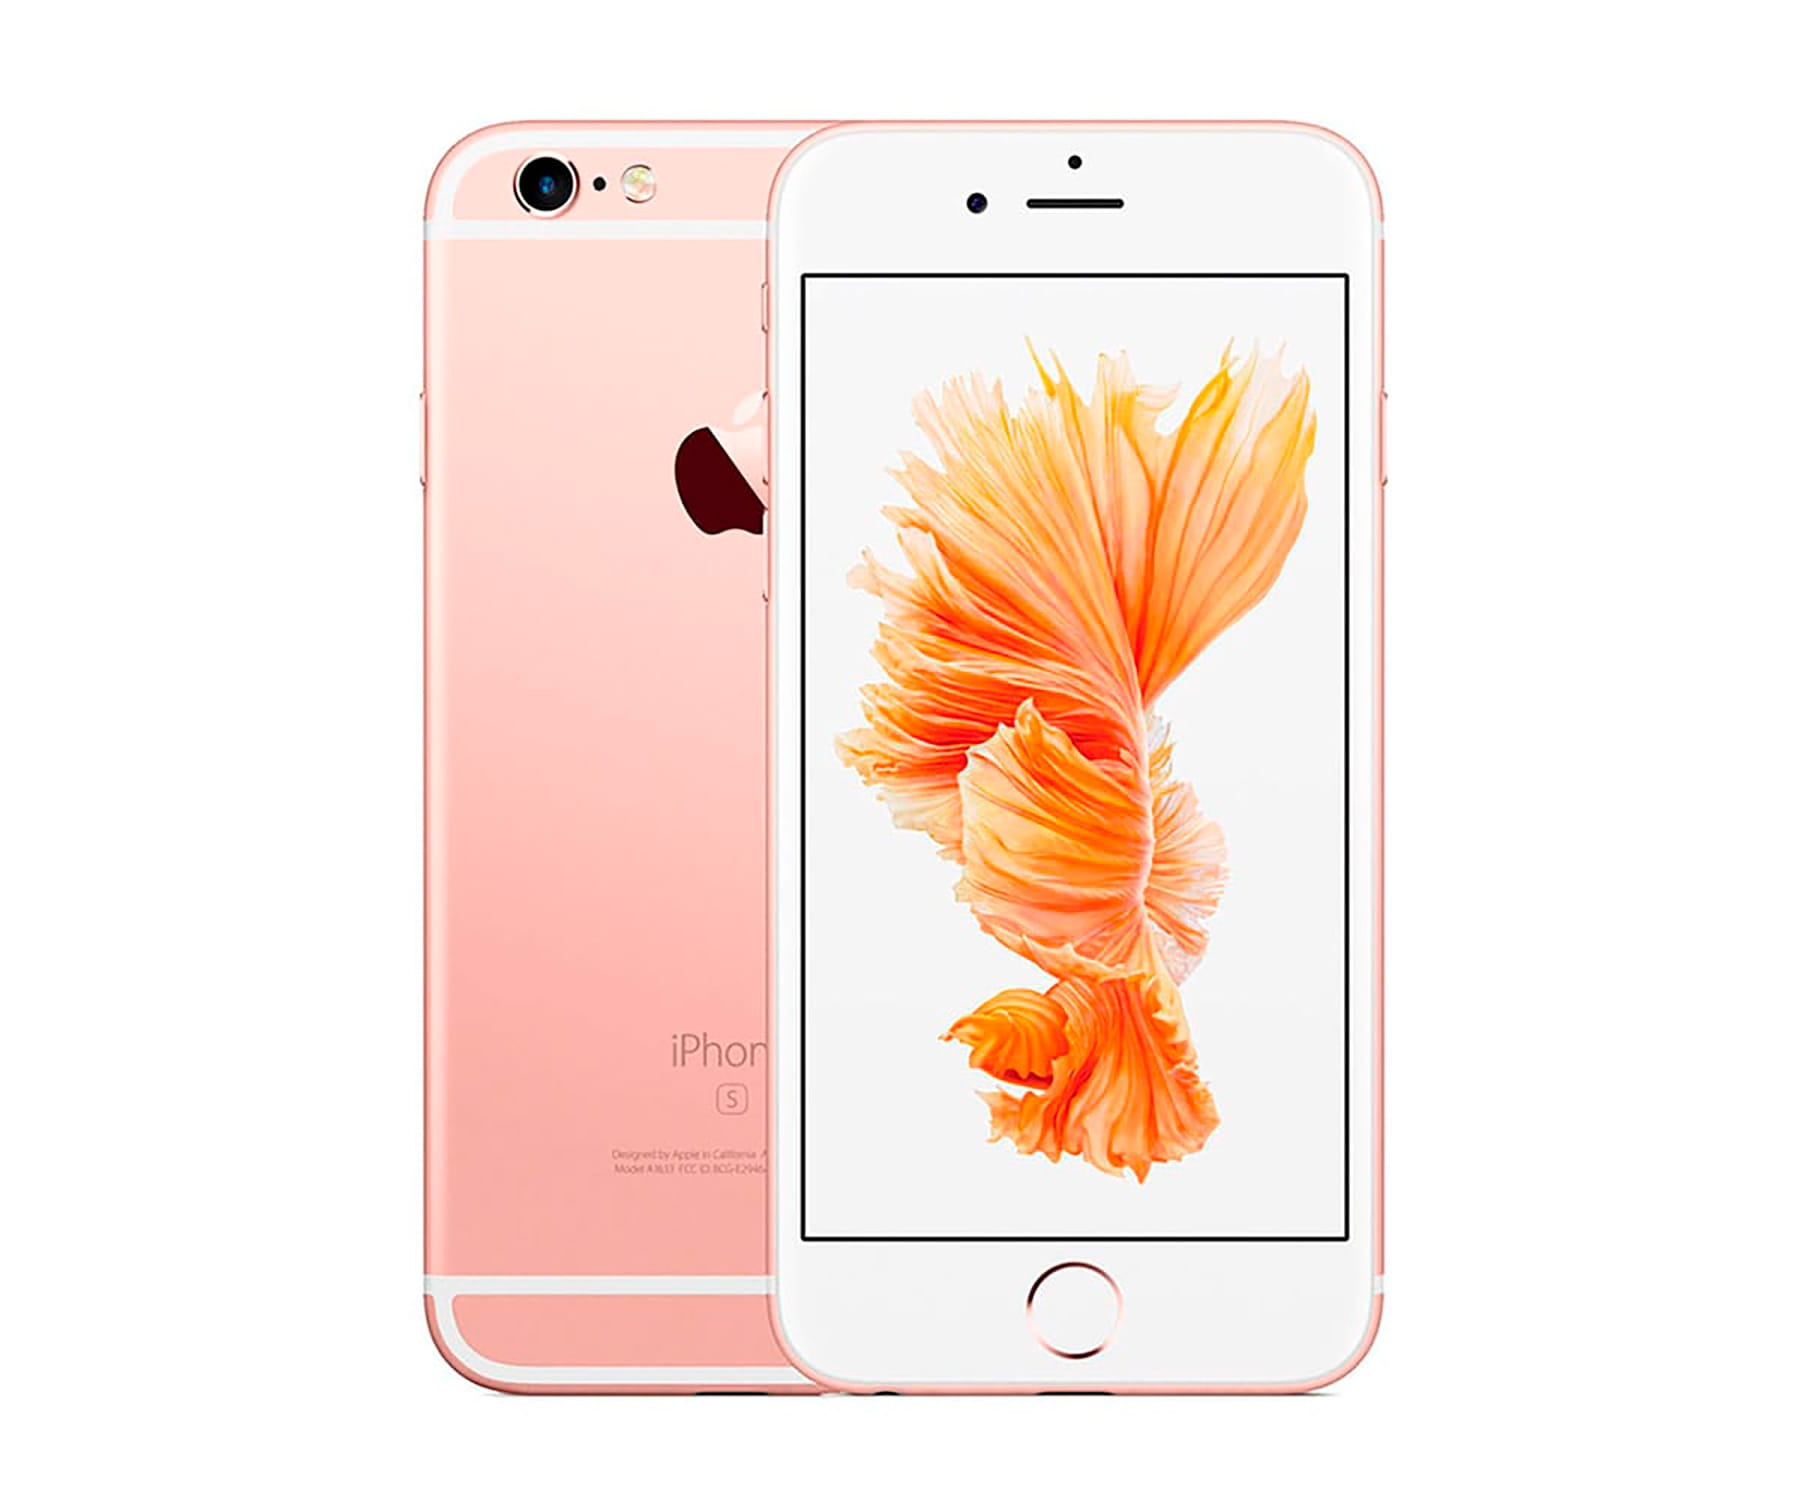 APPLE IPHONE 6S 64GB ORO ROSA REACONDICIONADO CPO MÓVIL 4G 4.7'' RETINA HD/2CORE/64GB/2GB RAM/12MP/5MP